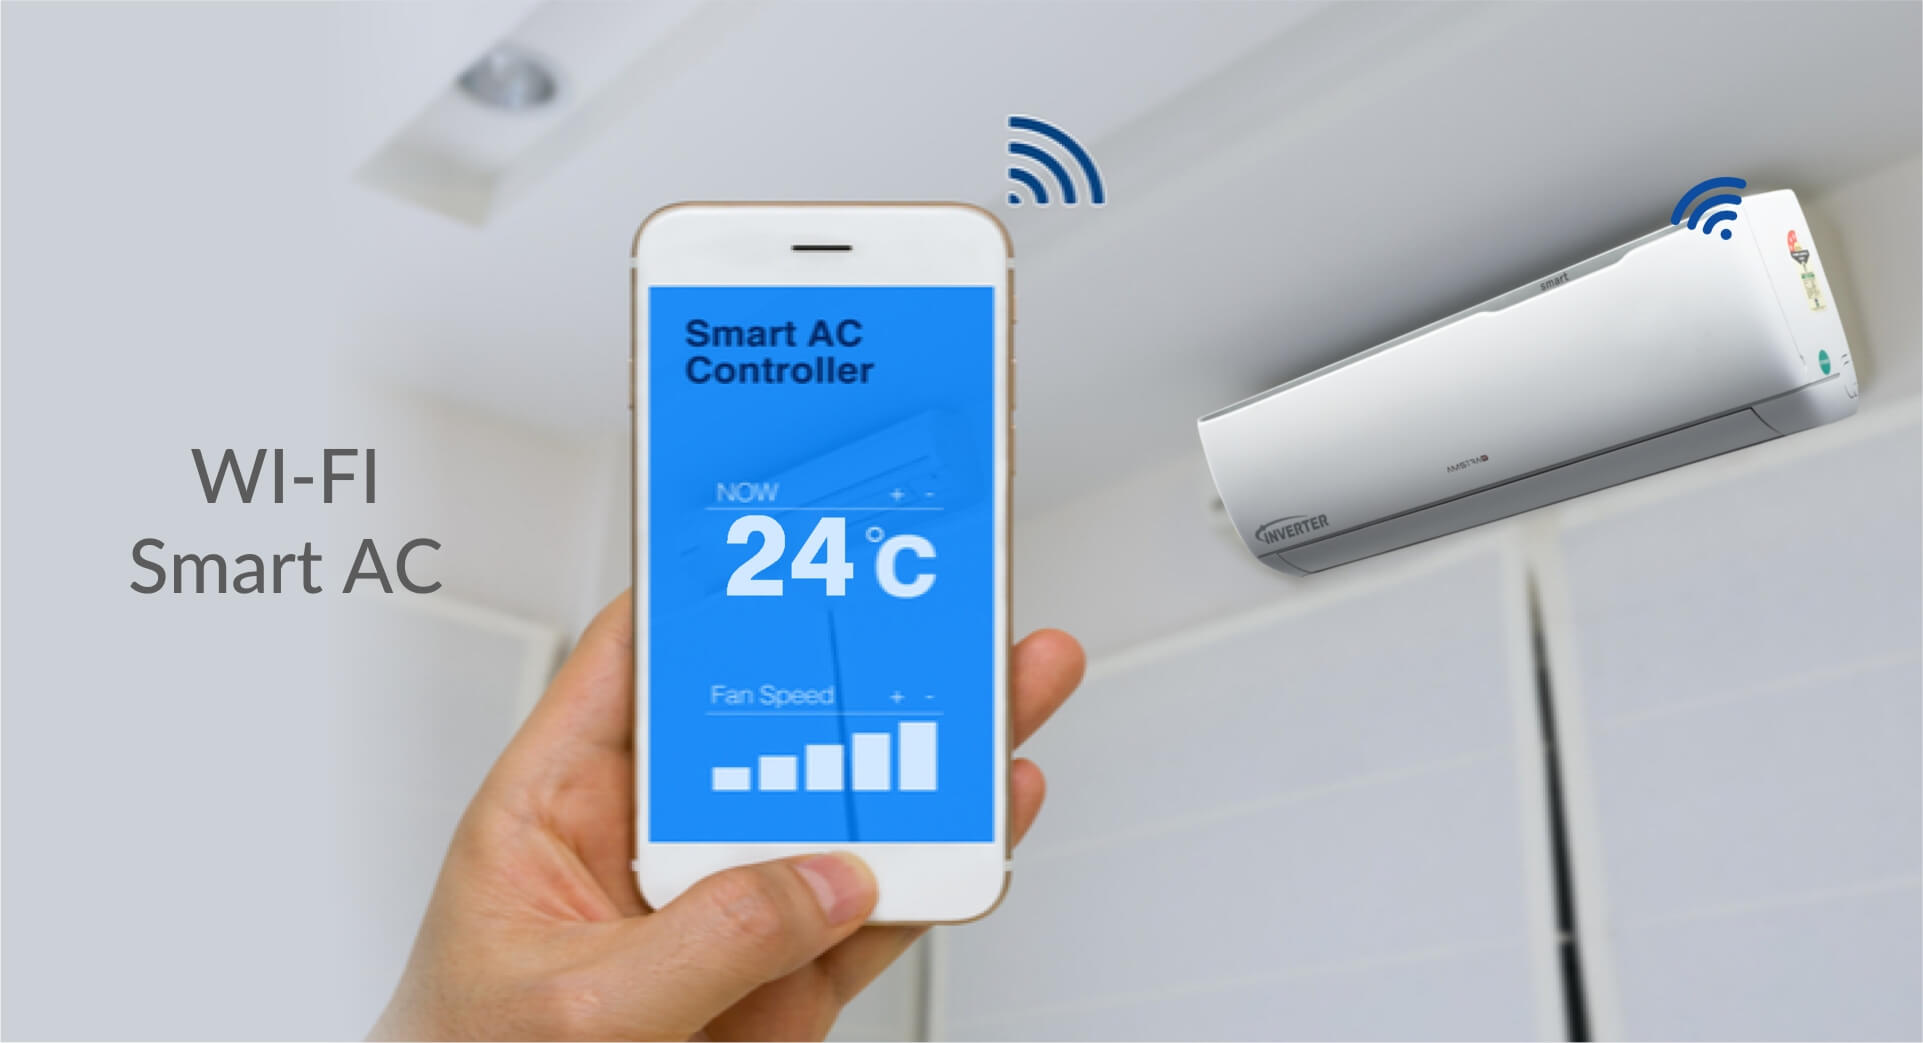 Amstrad Wi-Fi Connected Smart AC